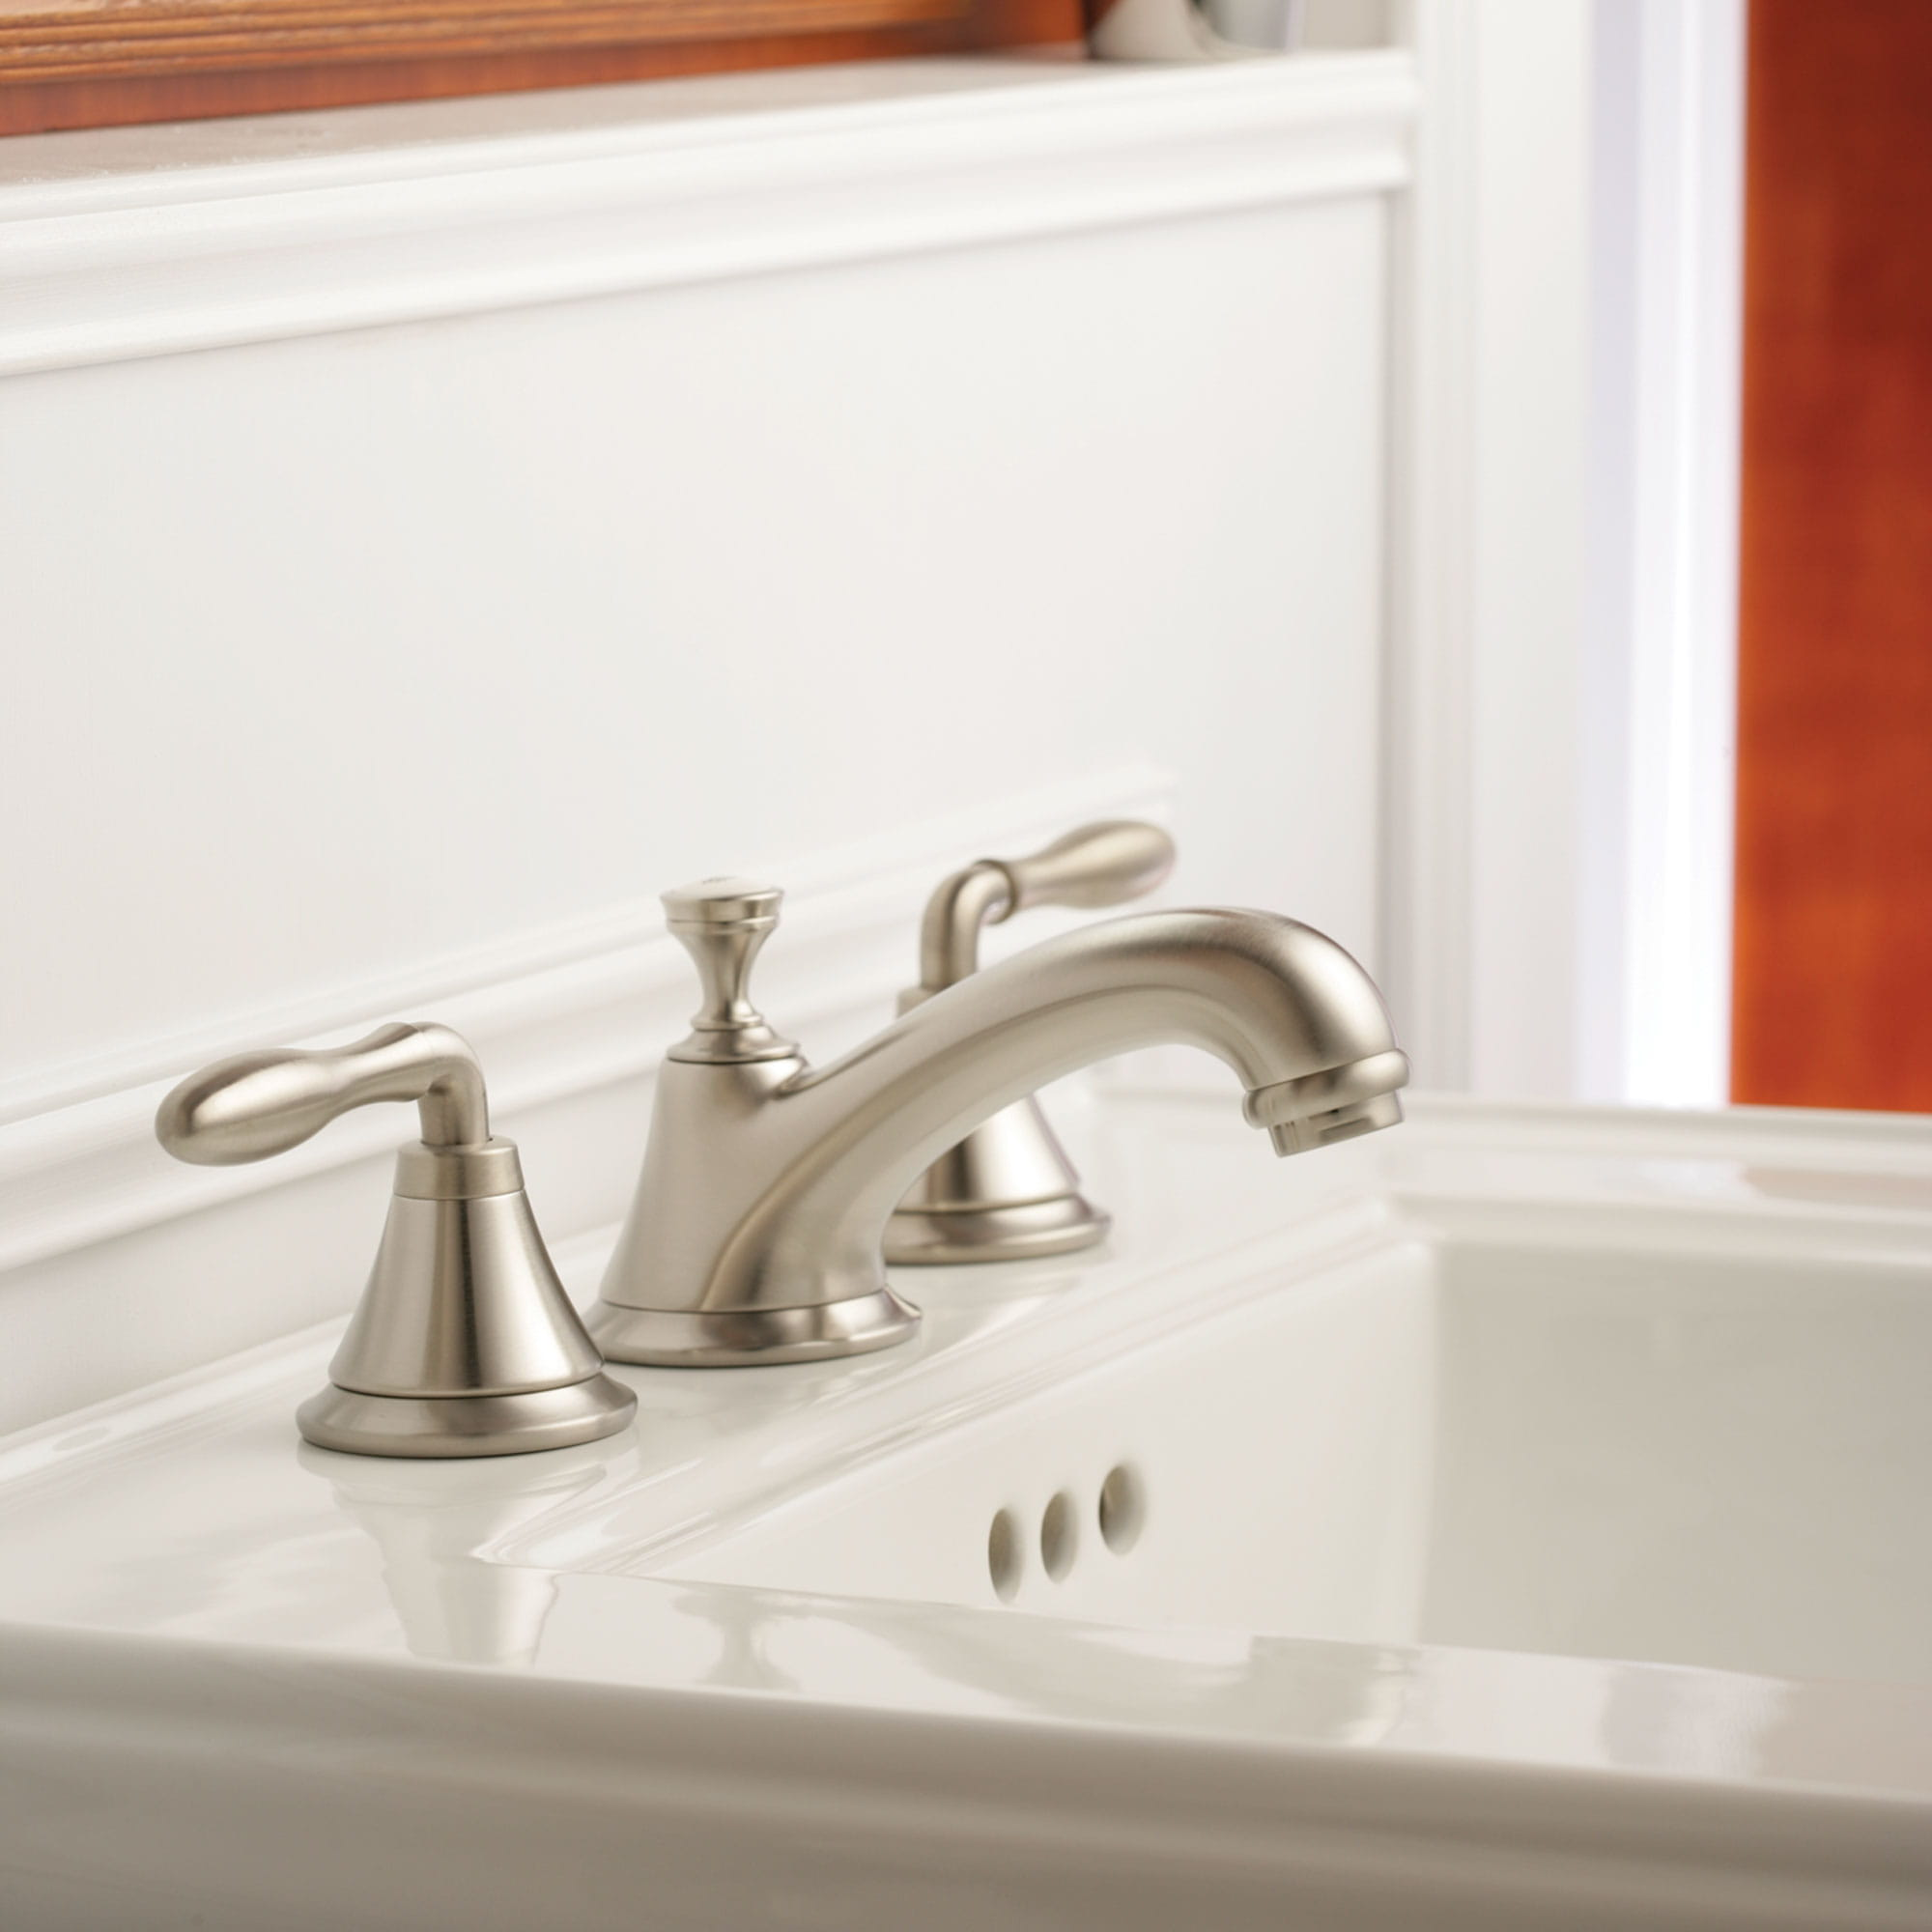 faucet with white background and white sink